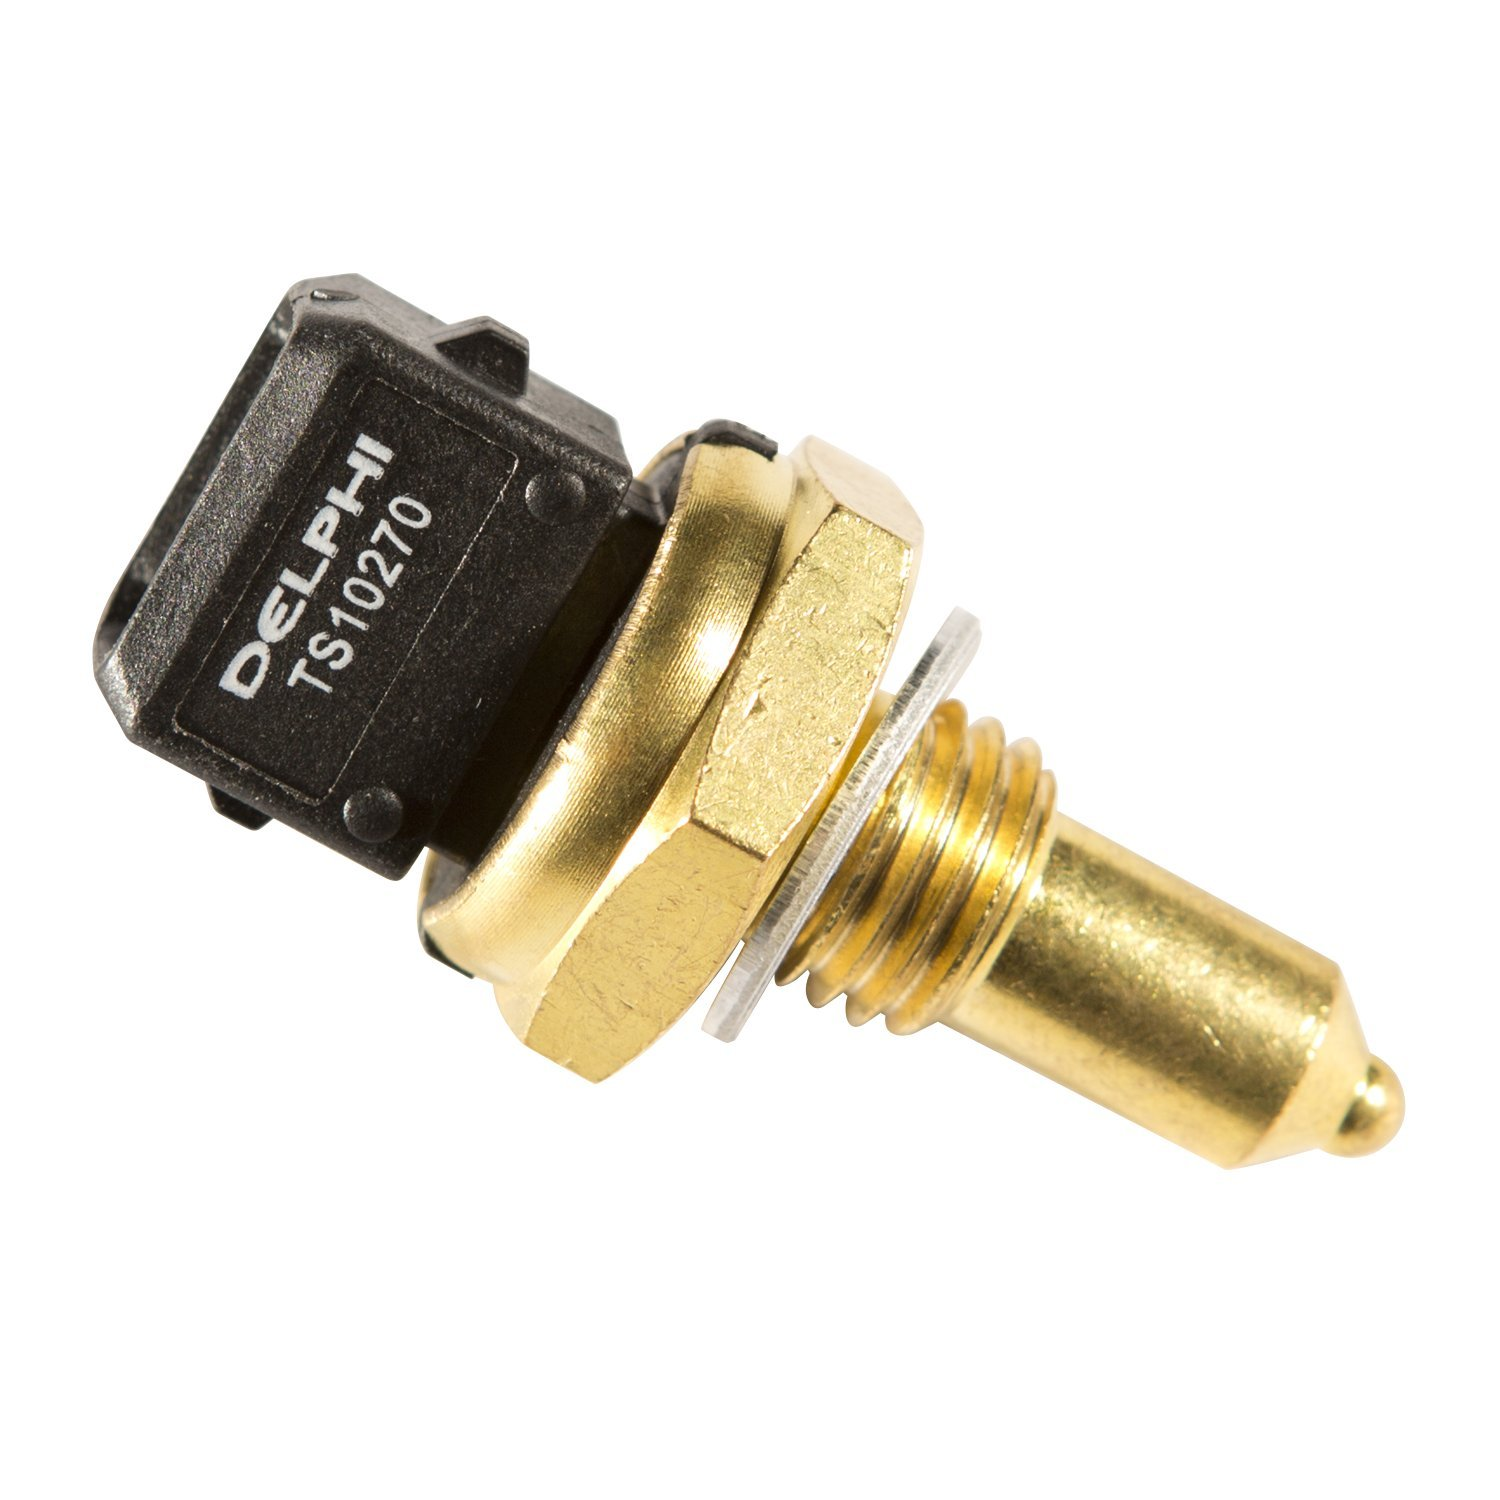 Delphi TS10270-11B1 Engine Coolant Temperature Sensor